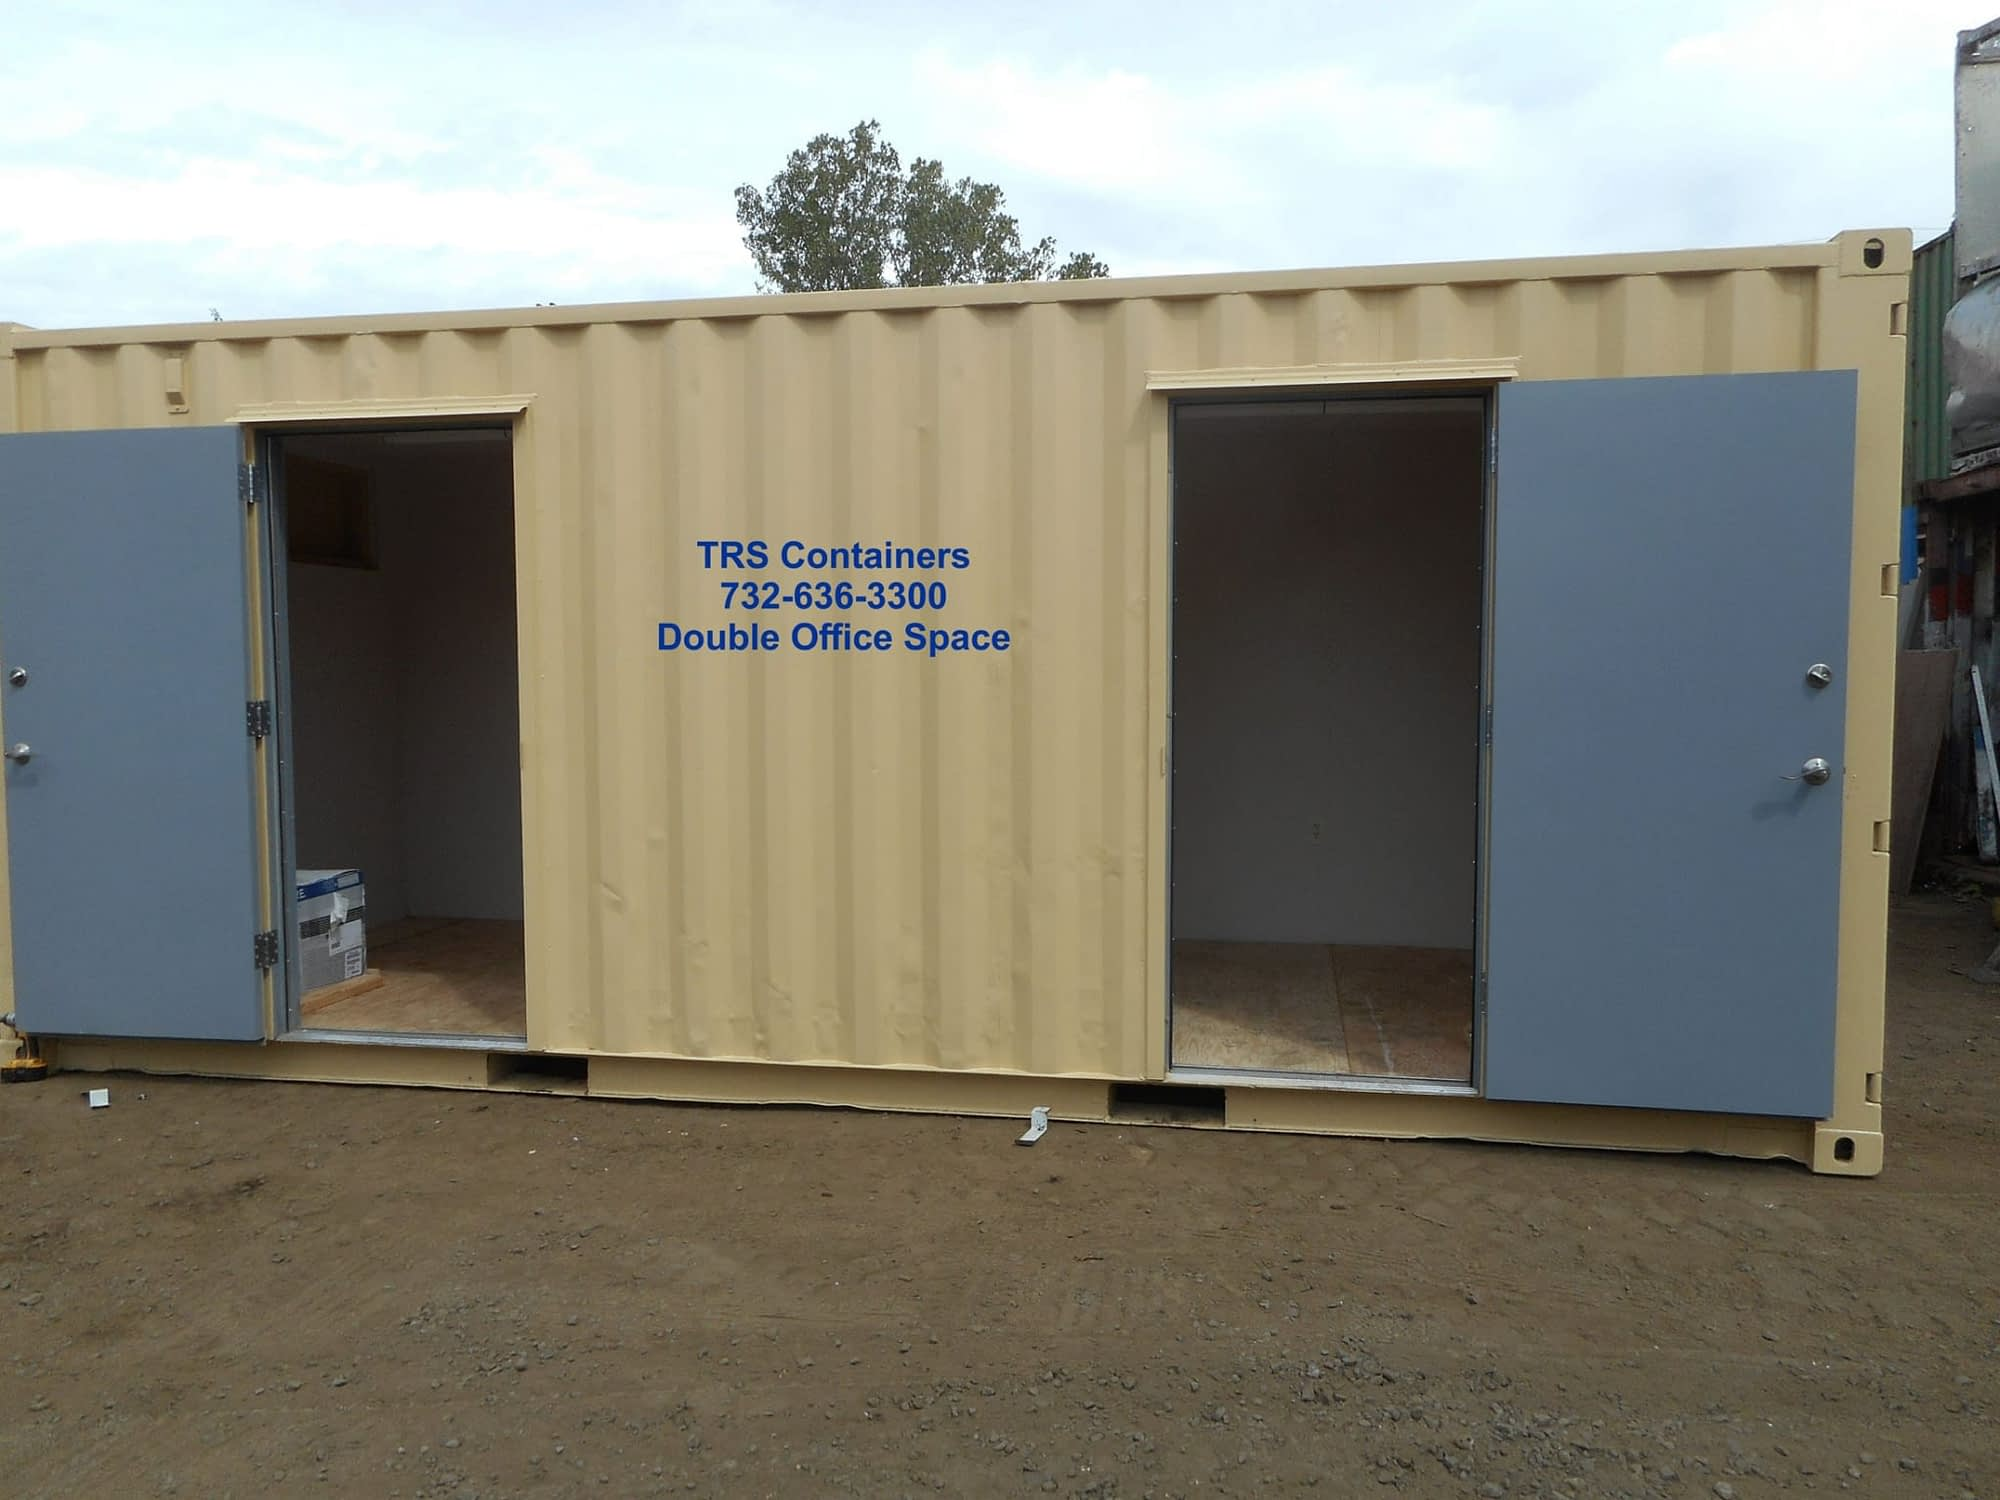 TRS fabrication work expands a containers functions with doors, electric, hvac and privacy